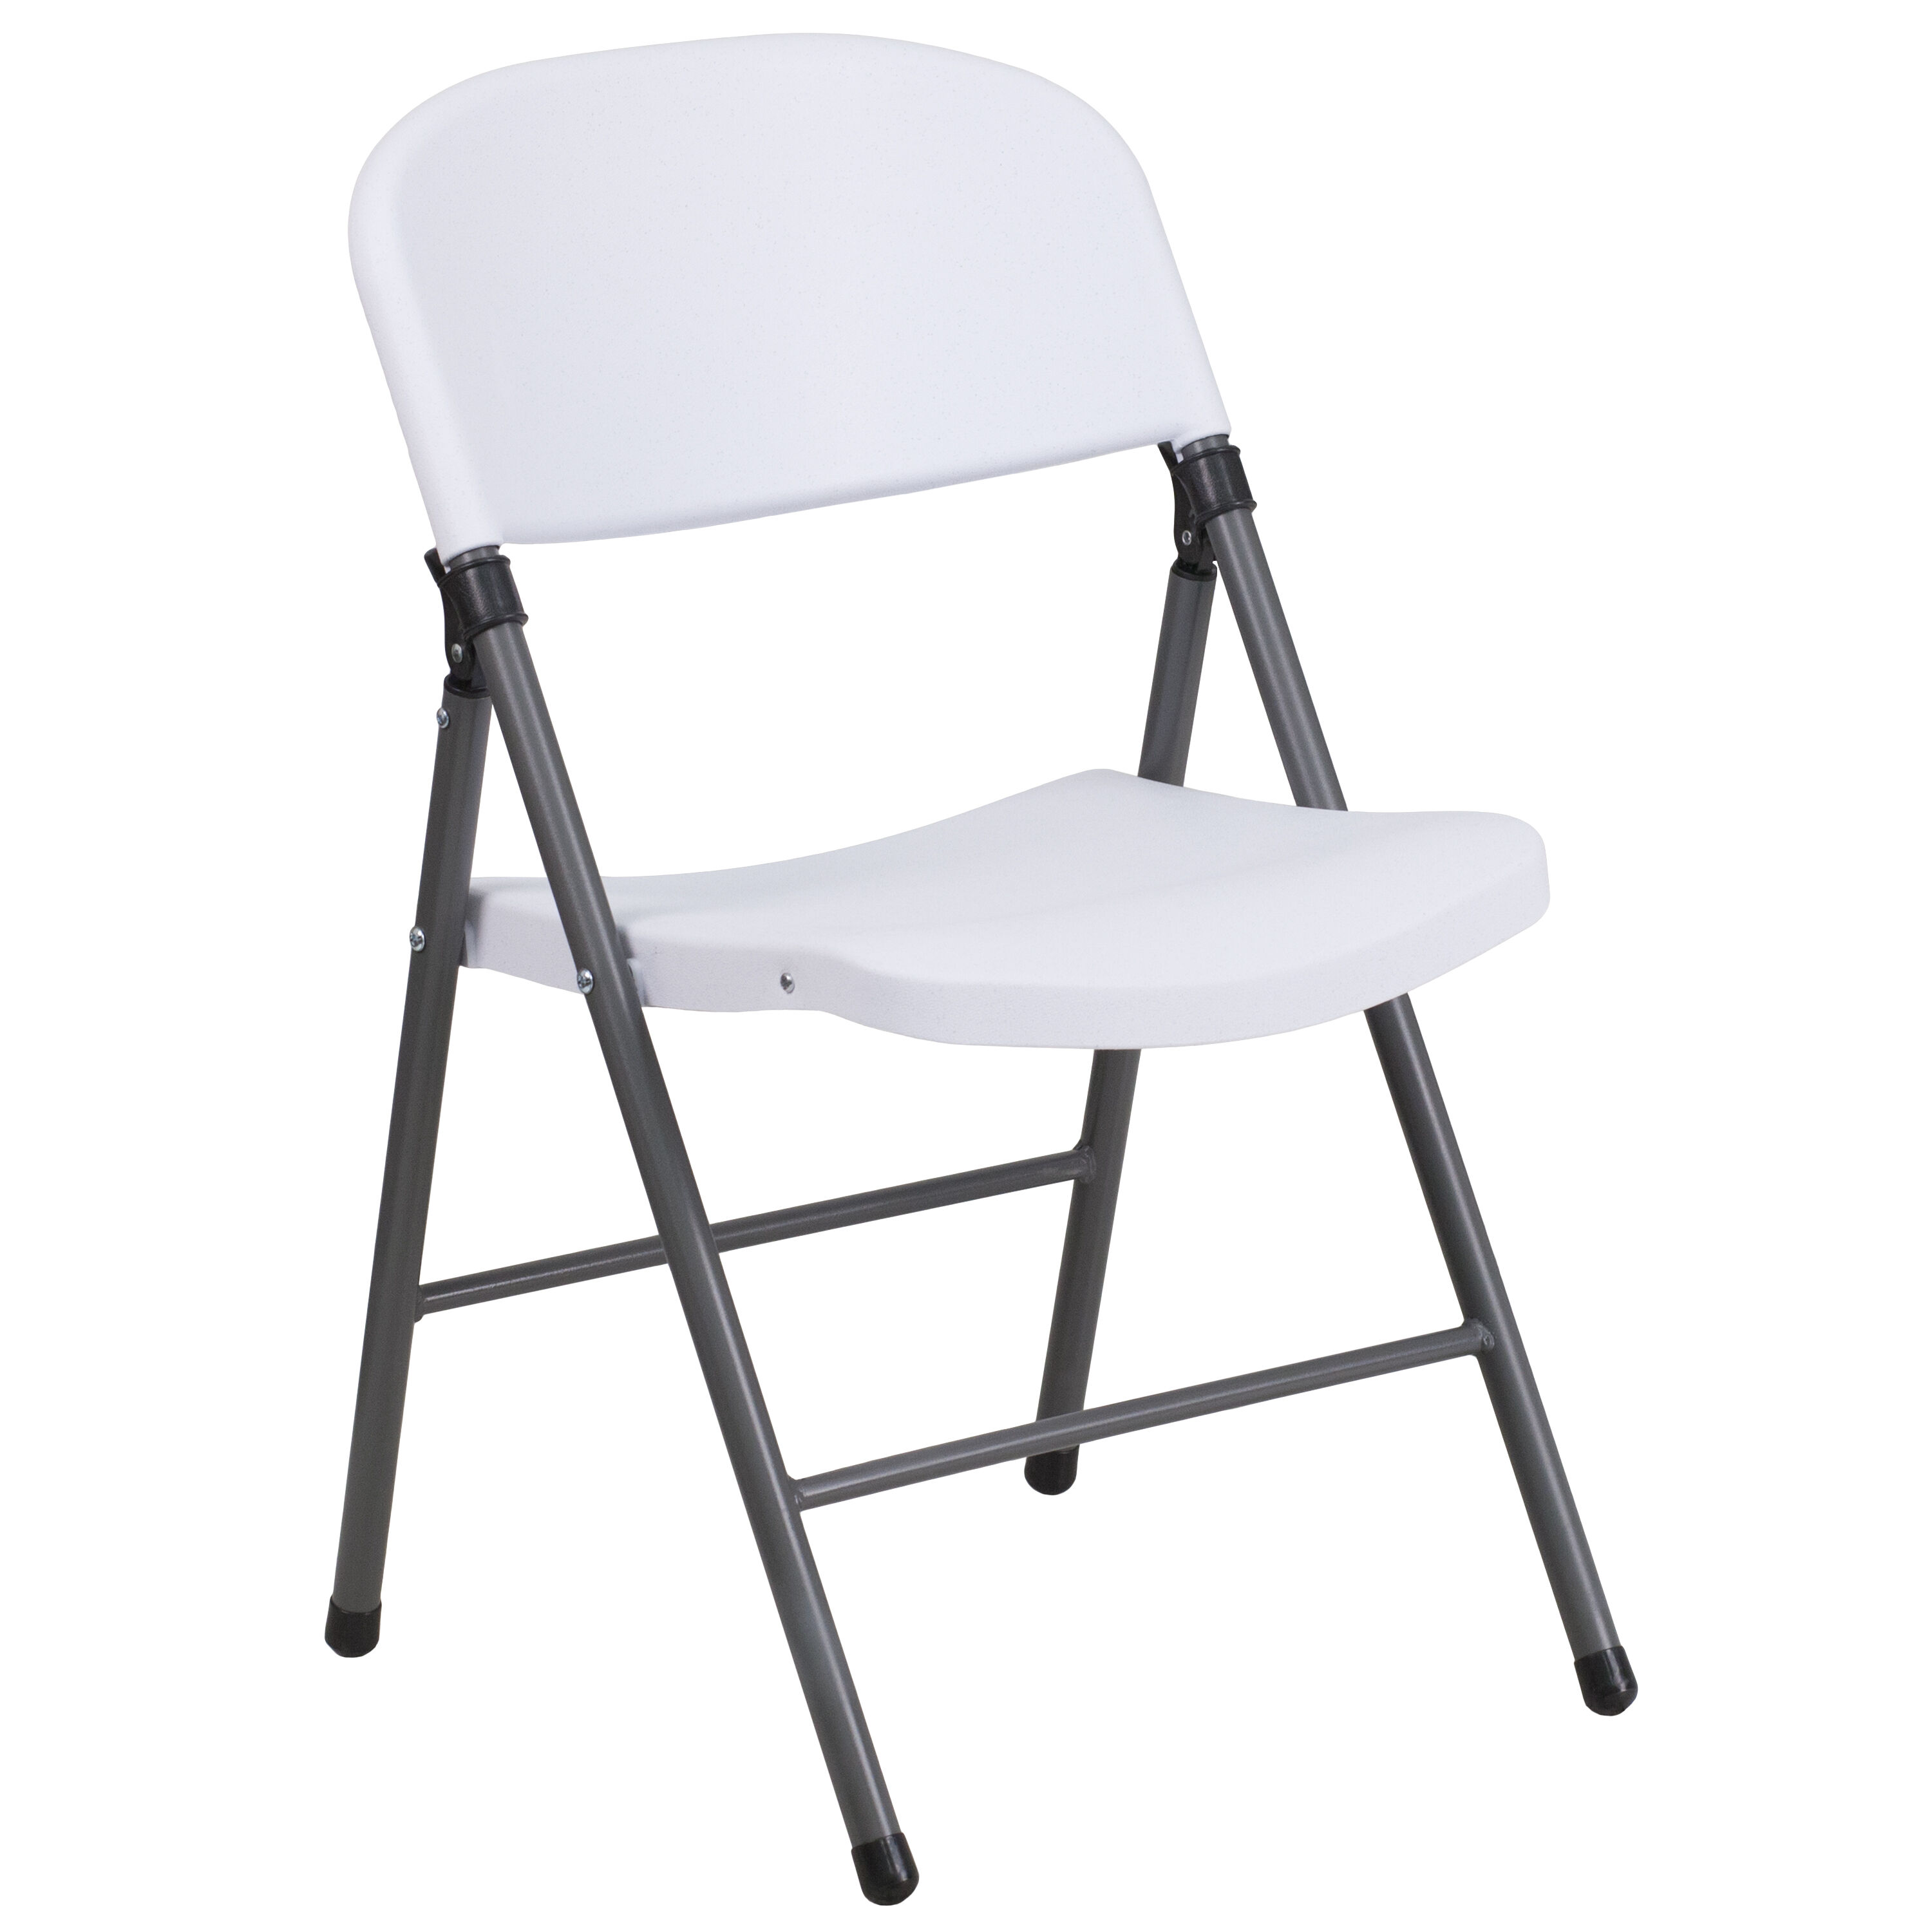 Attirant Capacity Granite White Plastic Folding Chair With Charcoal Frame Is. Click  To Expand